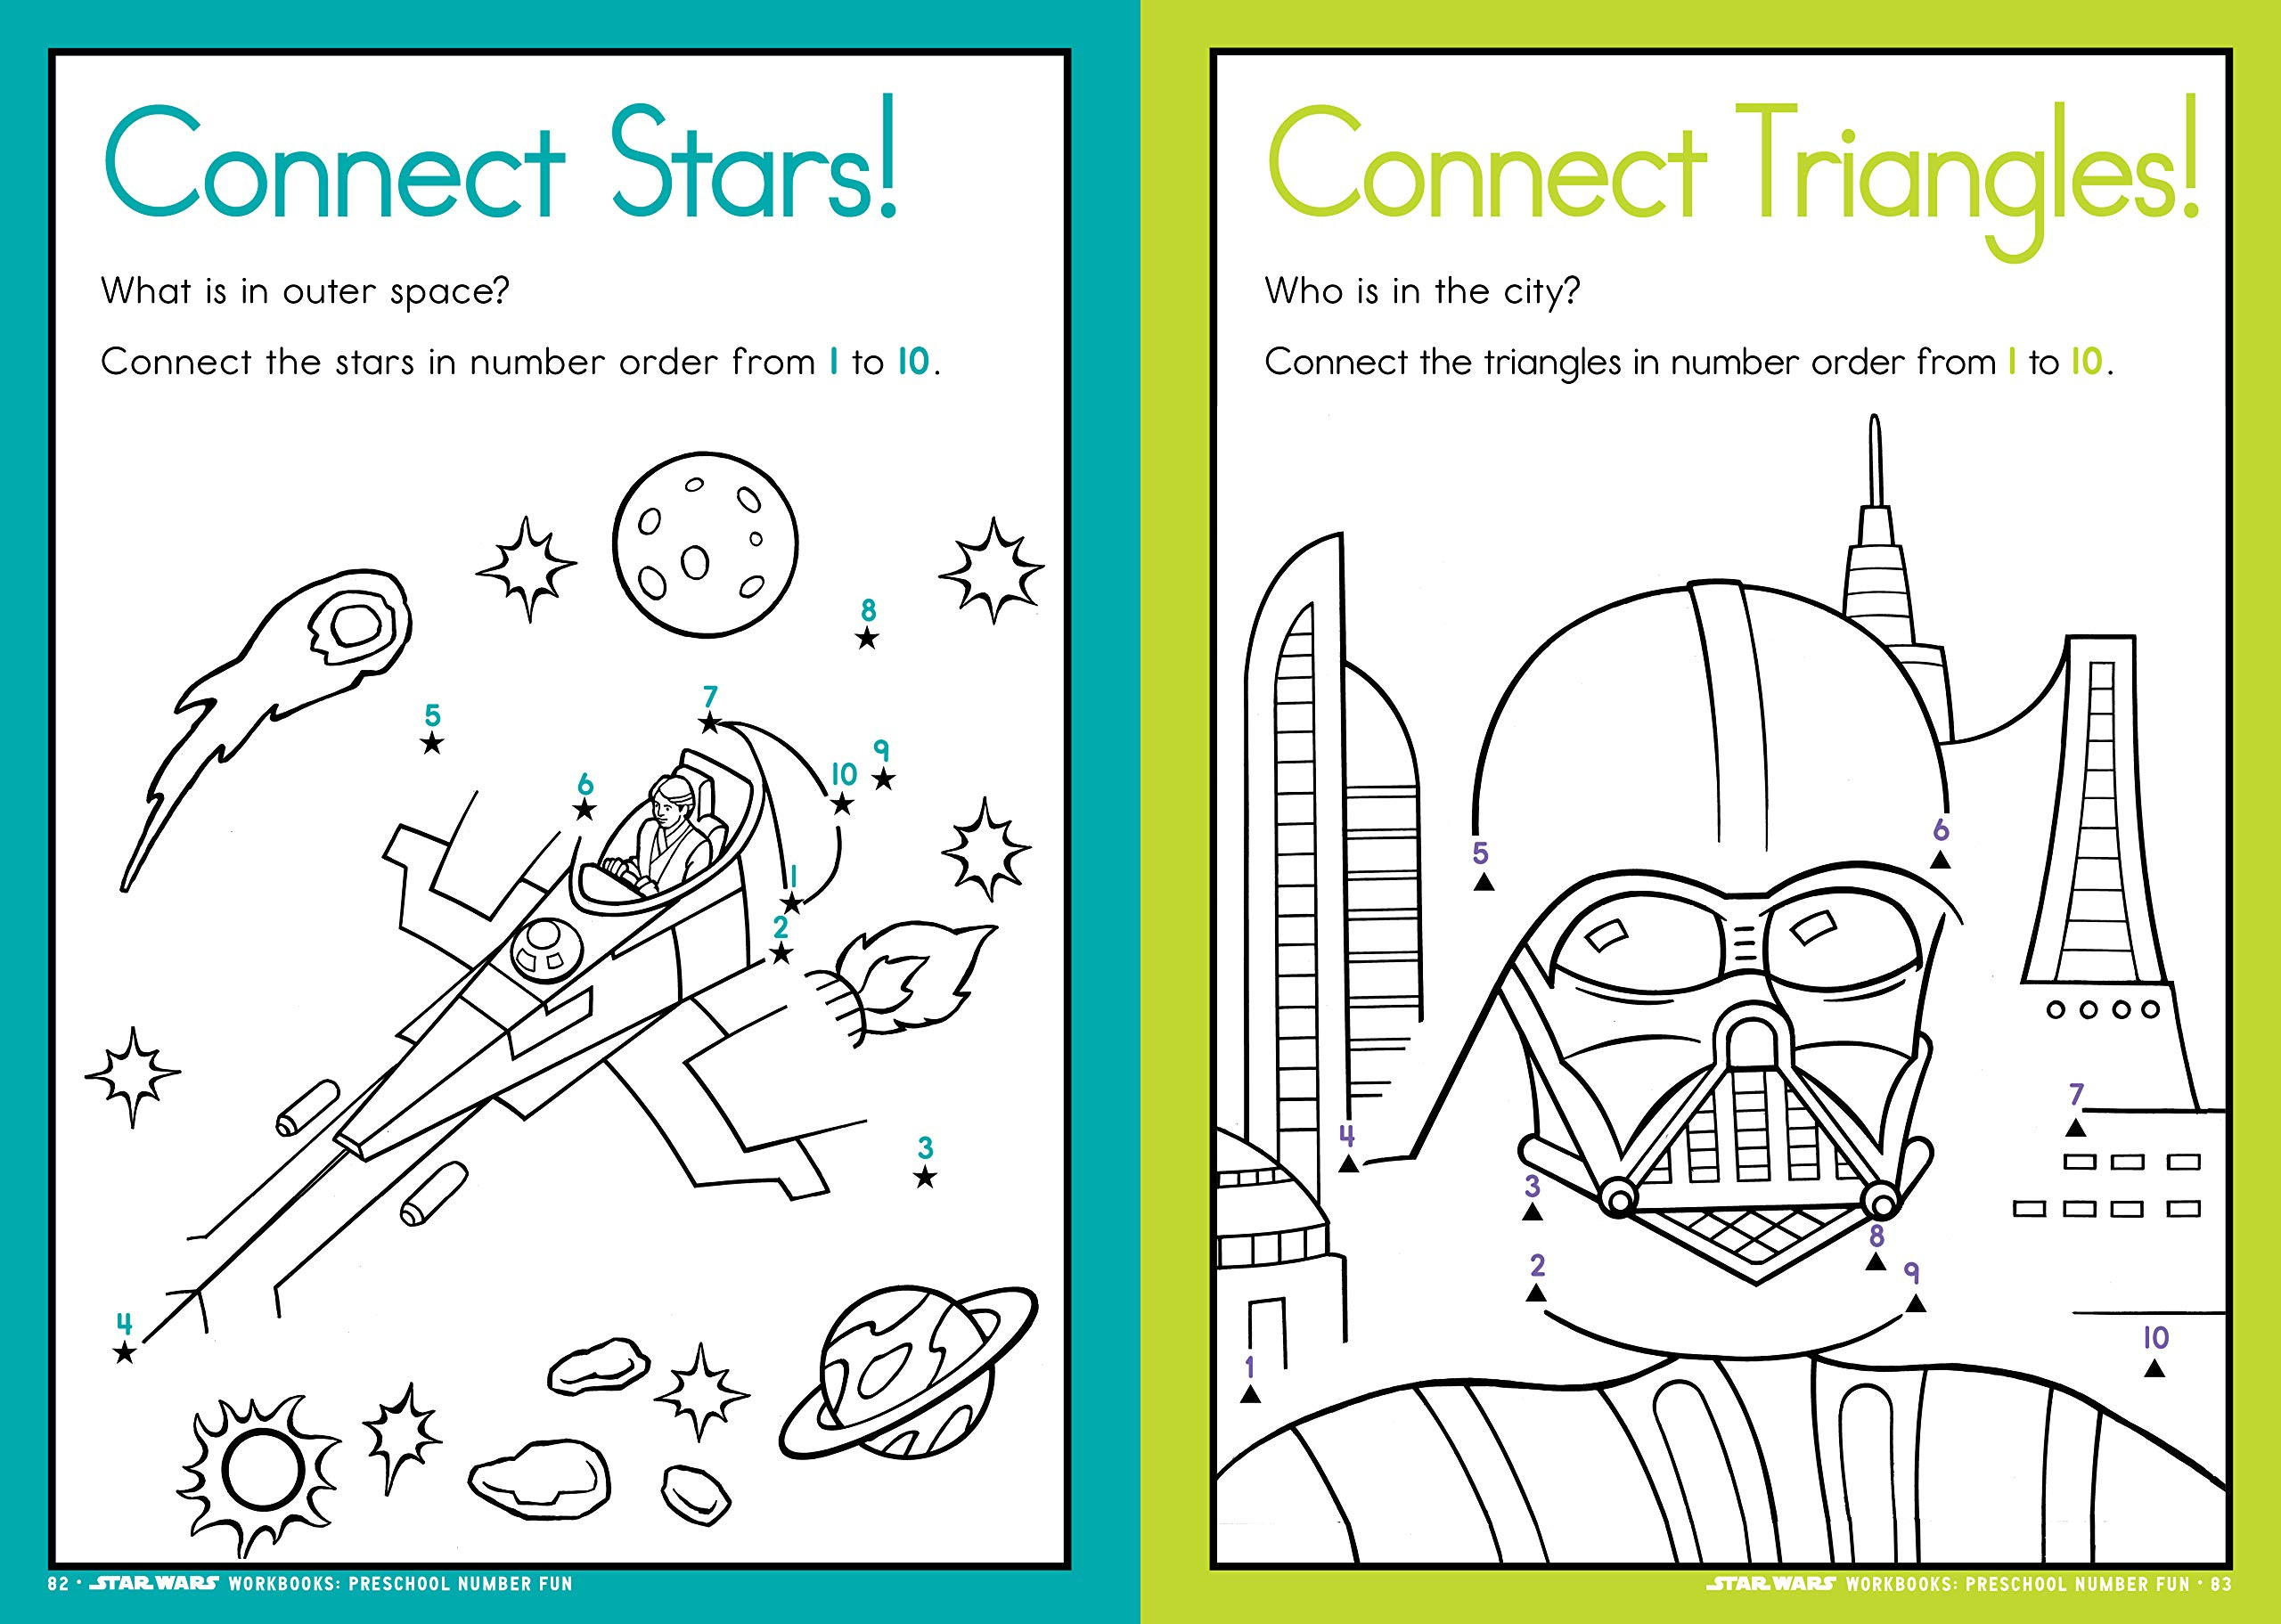 Star Wars Math Worksheets Star Wars Workbook Preschool Number Fun Star Wars